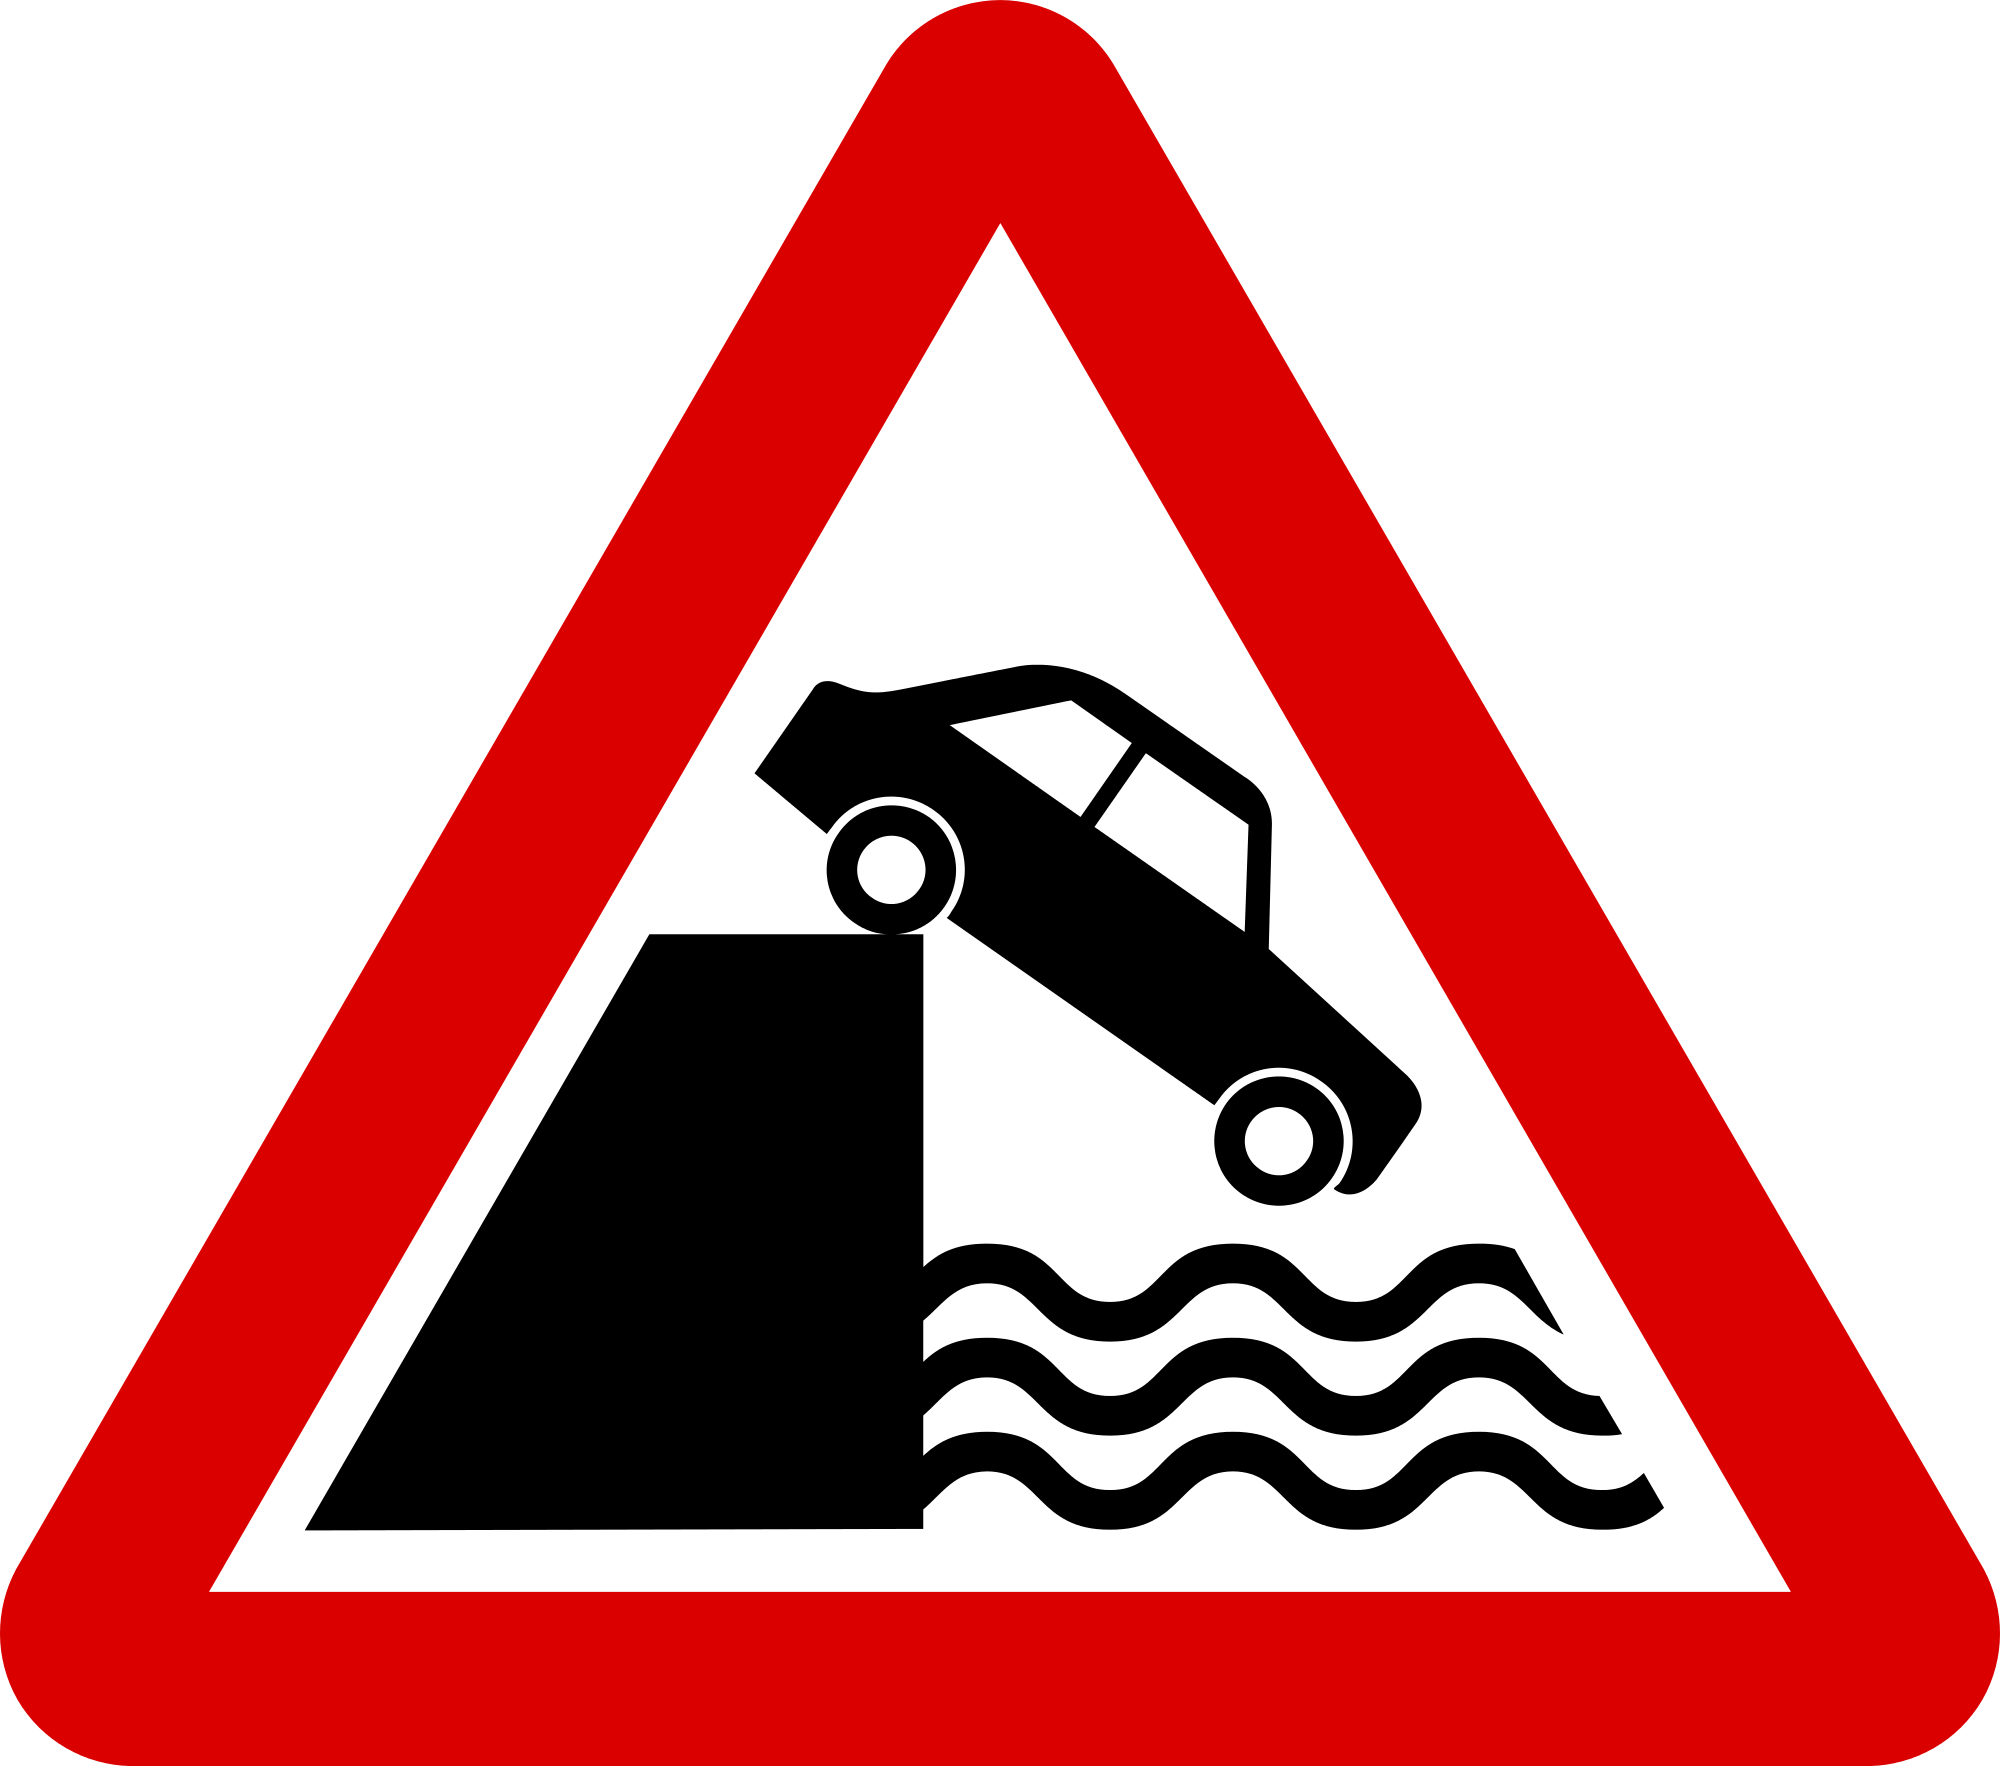 Bank clip sign. File mauritius road signs